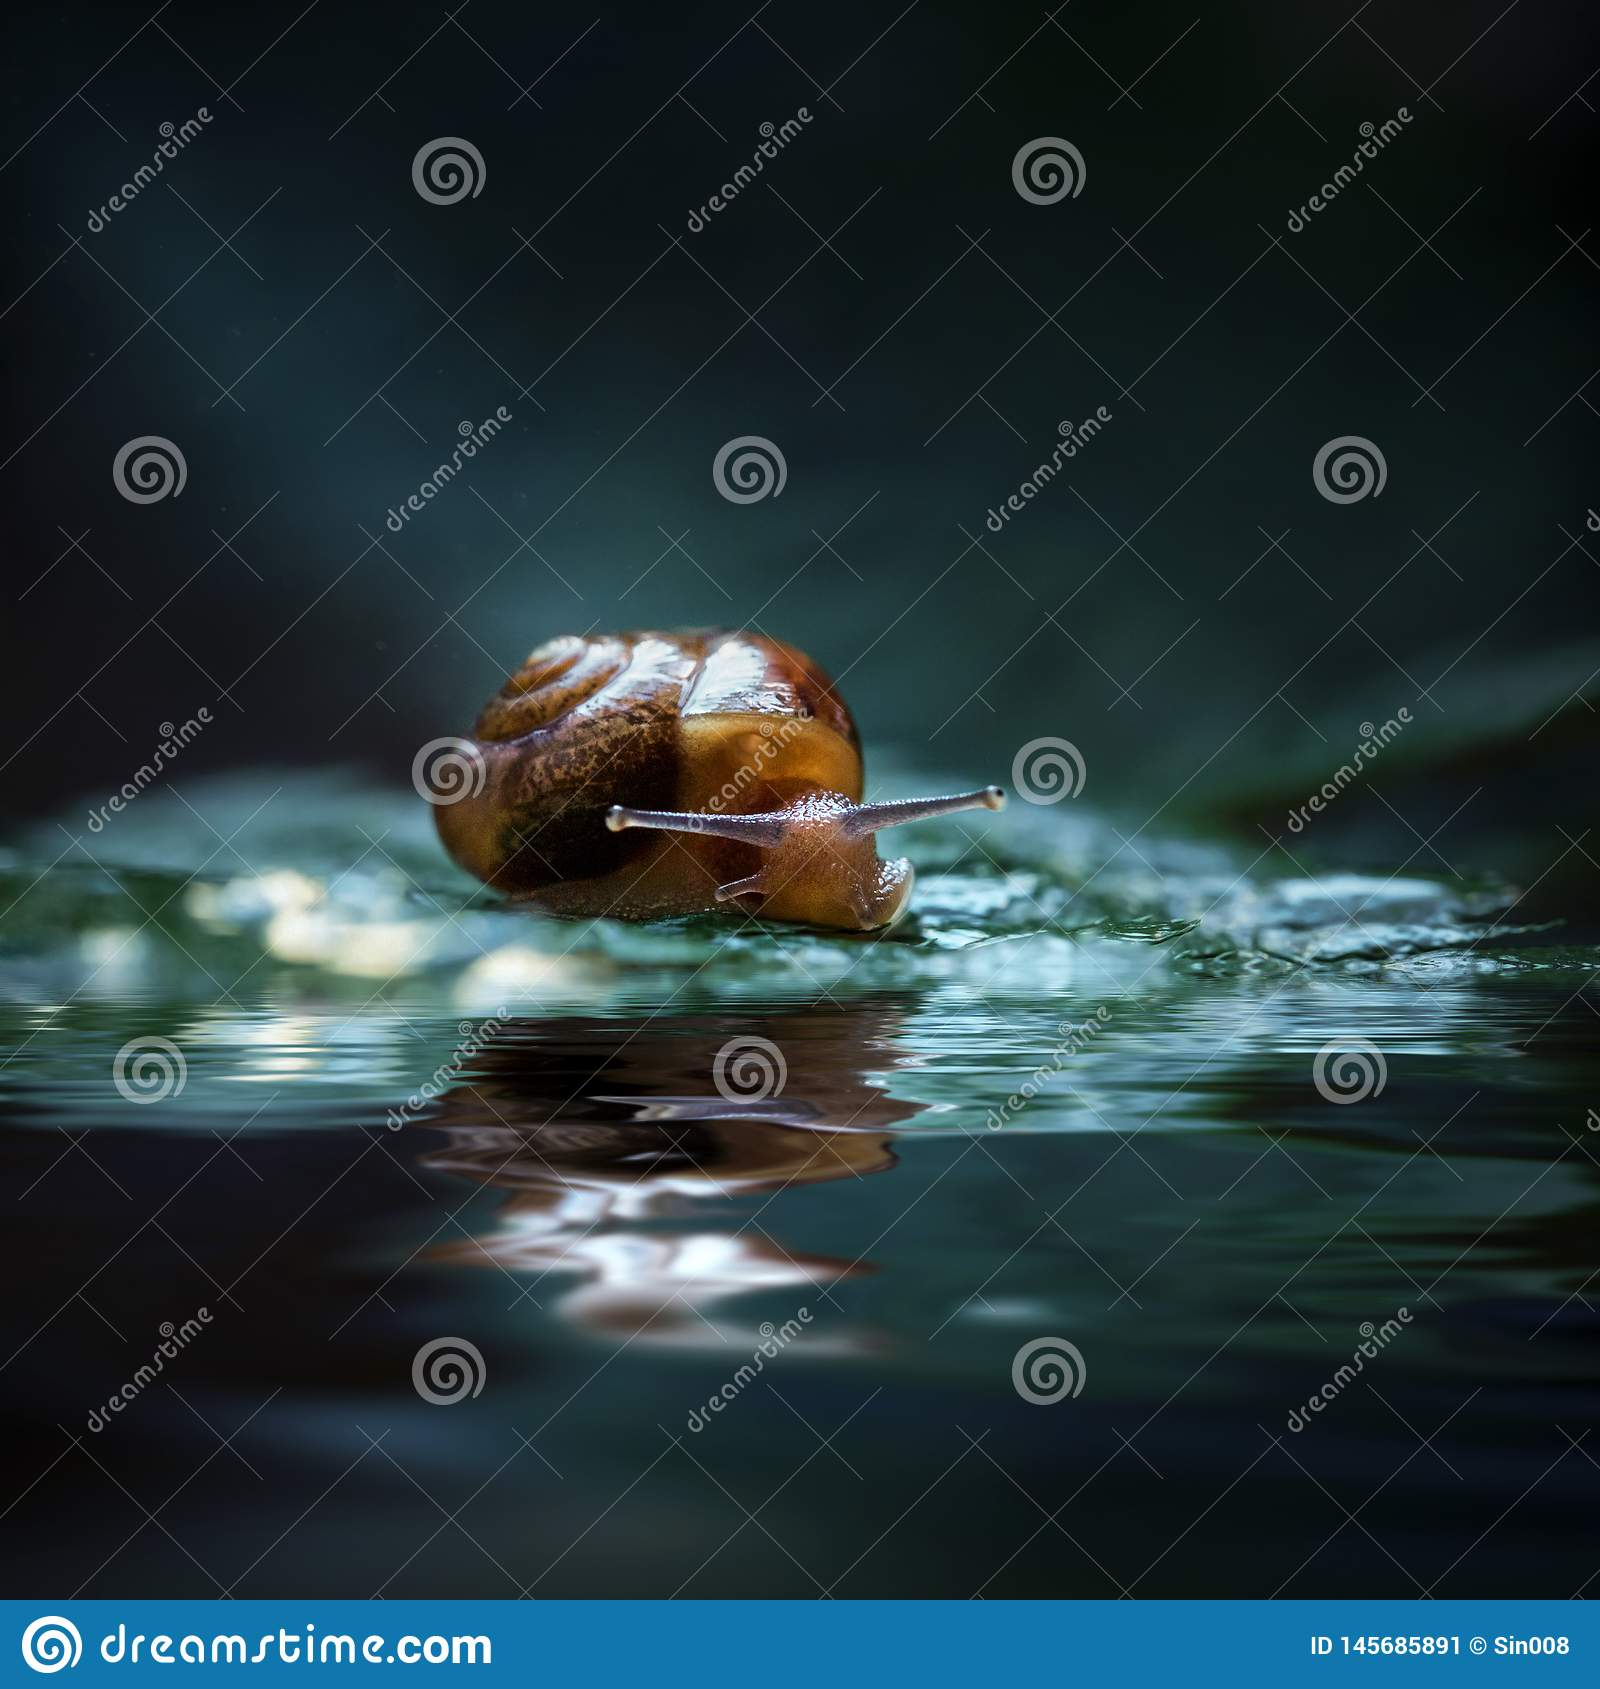 Snail sitting on a green leaf. Macro. Close - up on a dark blue background. Reflected in water. Snail by the water on the pond.